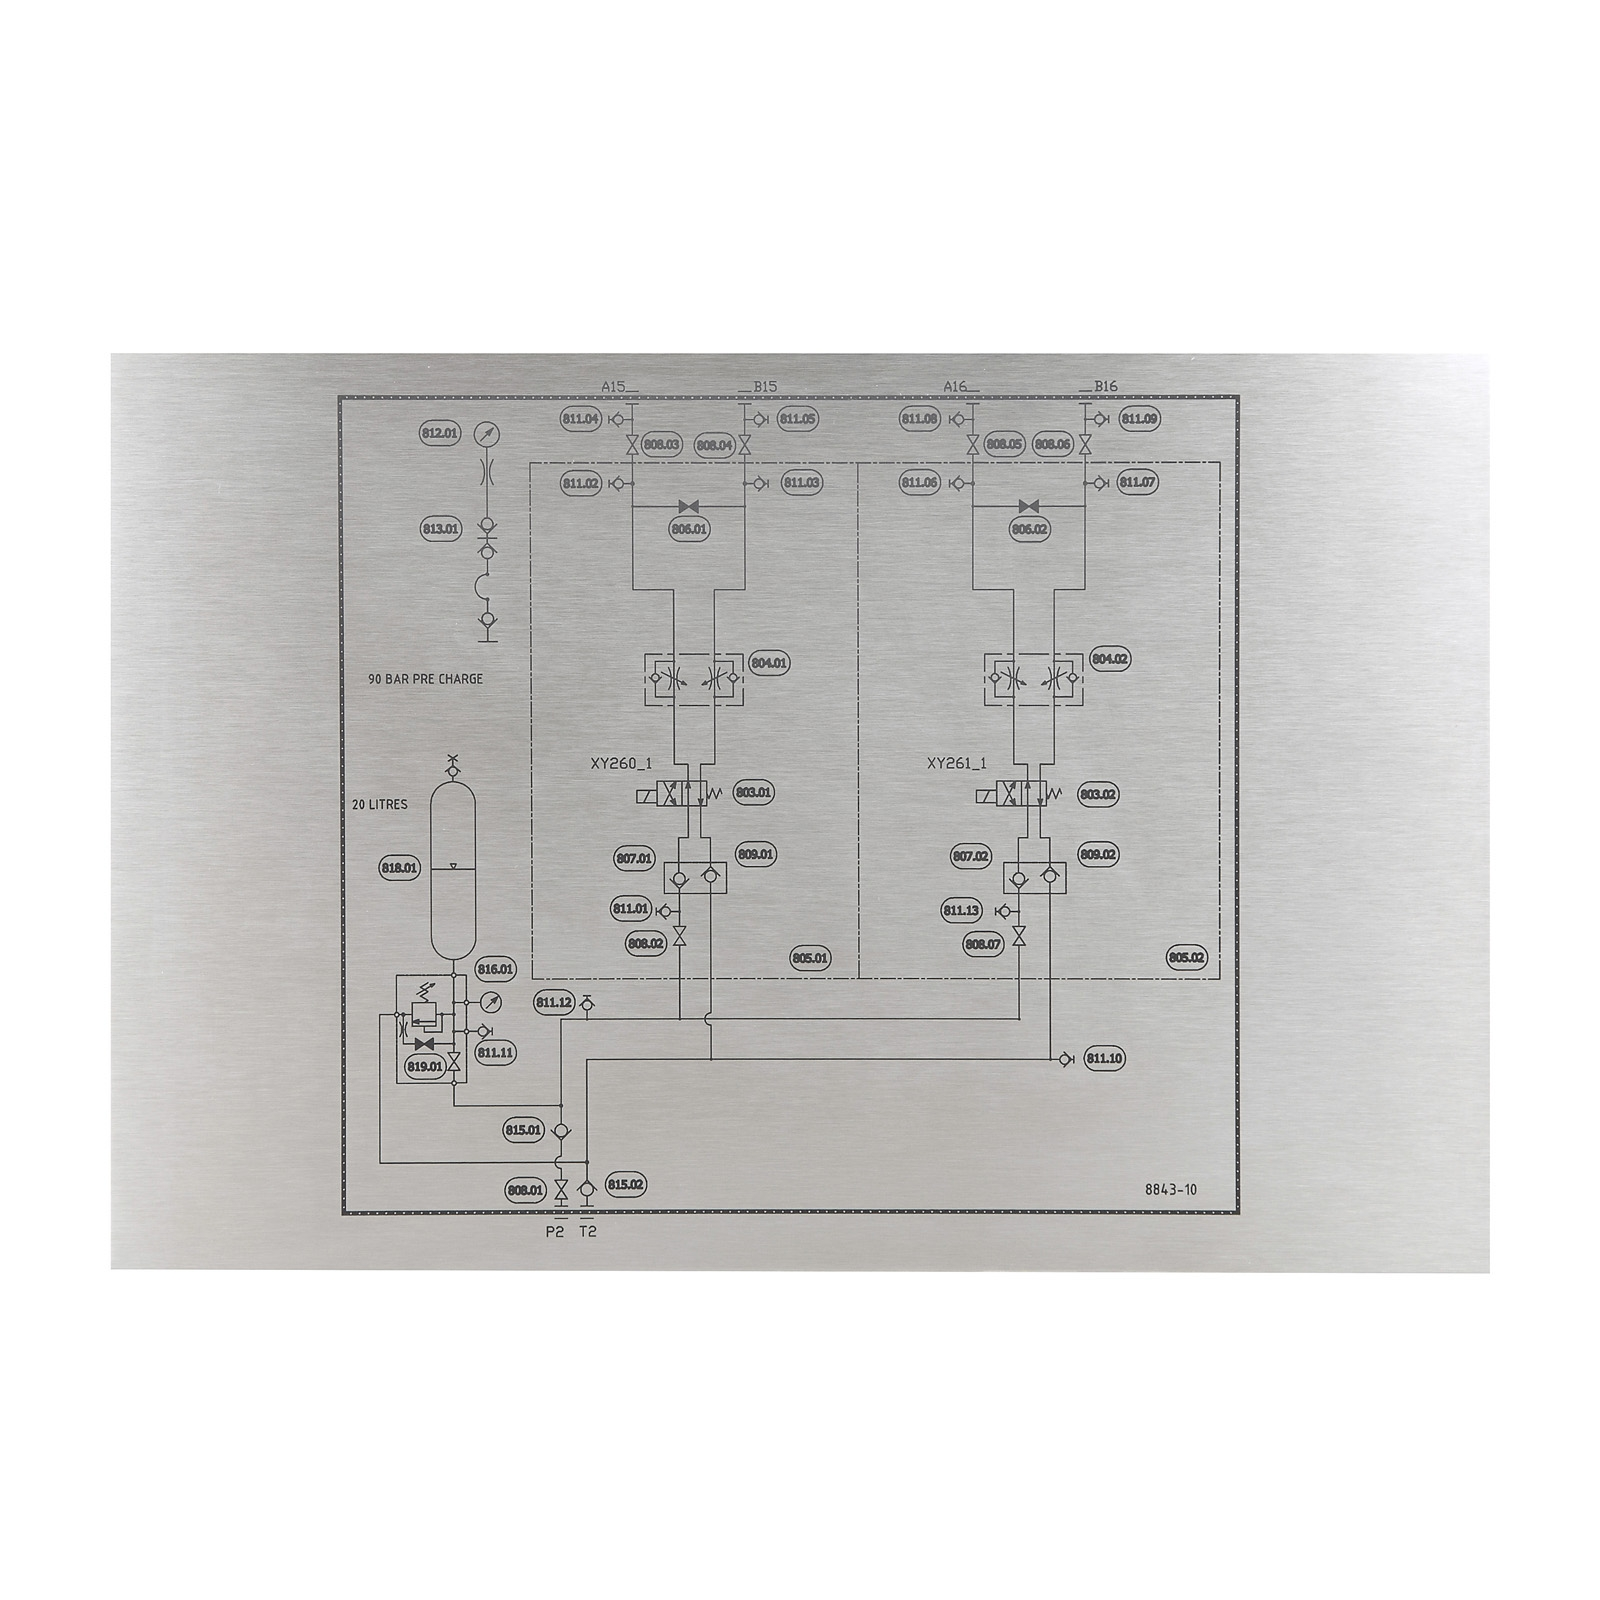 Control panels, Mimic and Schematic Diagrams using graphic ... on motor control diagram symbols, power panels electrical diagram symbols, control stations drawings, standard control panel symbols, electrical wiring diagram symbols, residential wiring diagram symbols, intermediate symbols, electrical schematic symbols, layout drawing symbols, schematic drawing symbols, motor control schematic symbols,